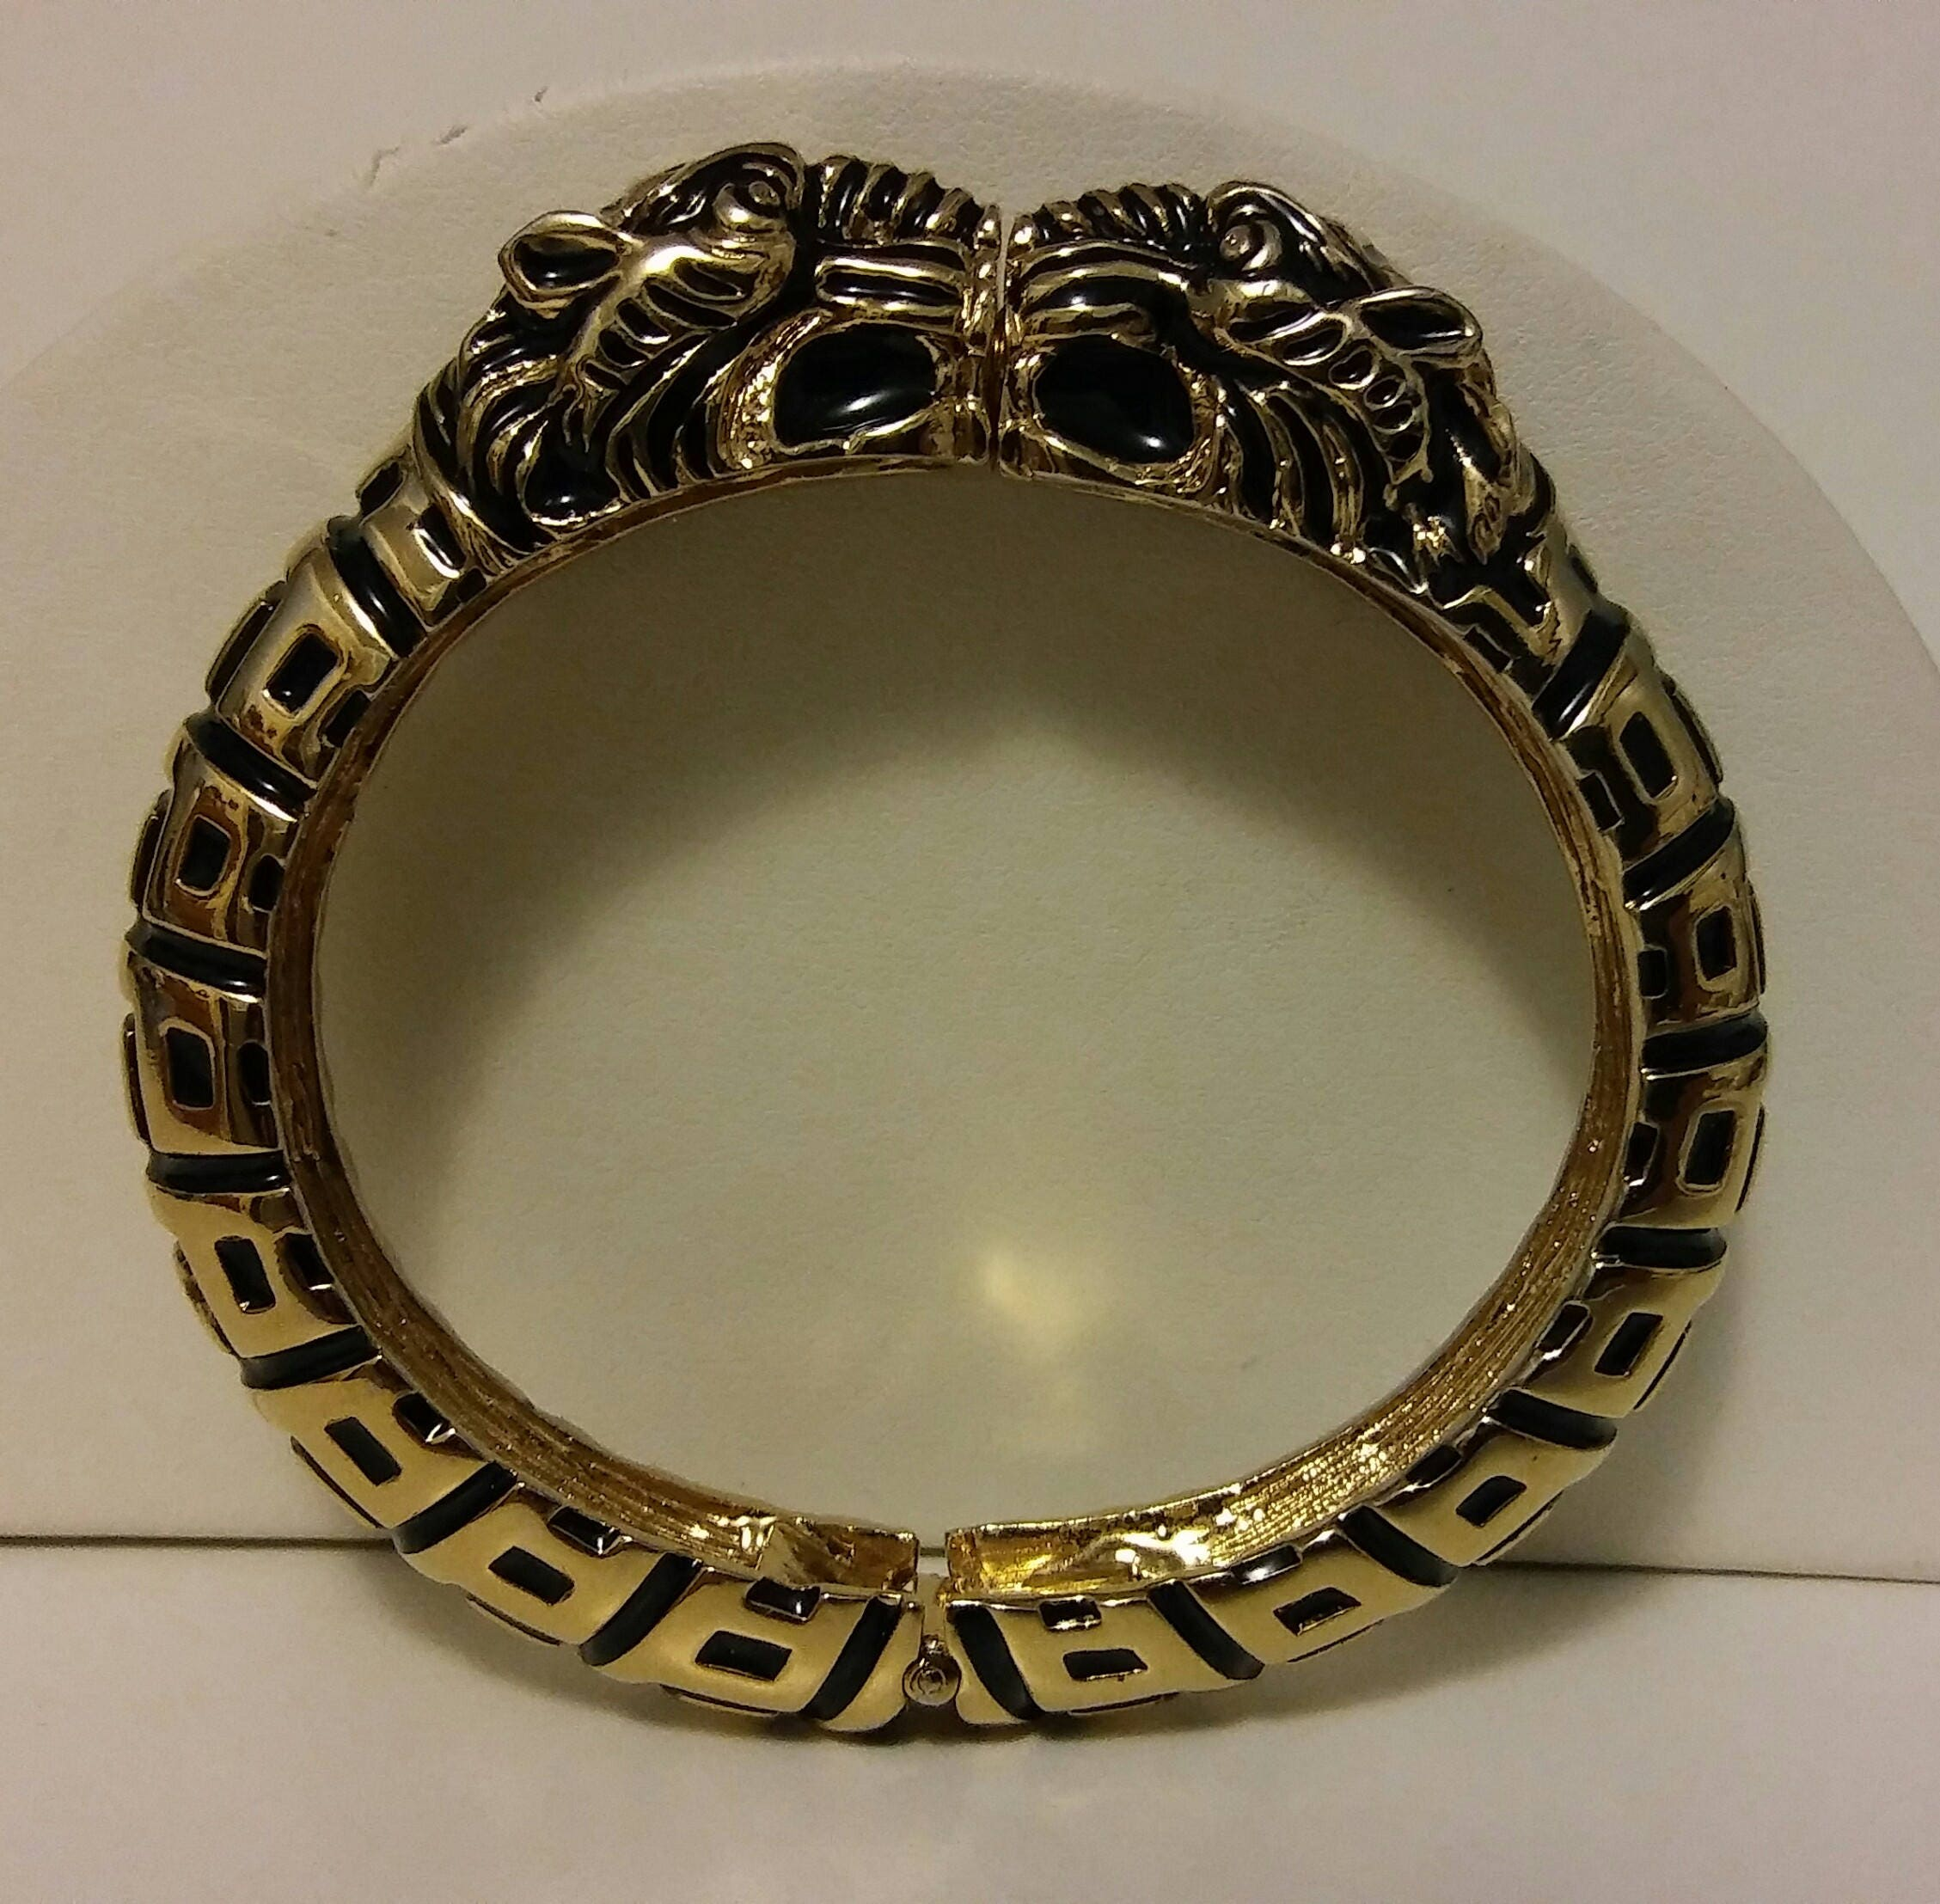 silver sterling clamper probably fish bracelet pichardo lotfinder de e by nyr a lot details